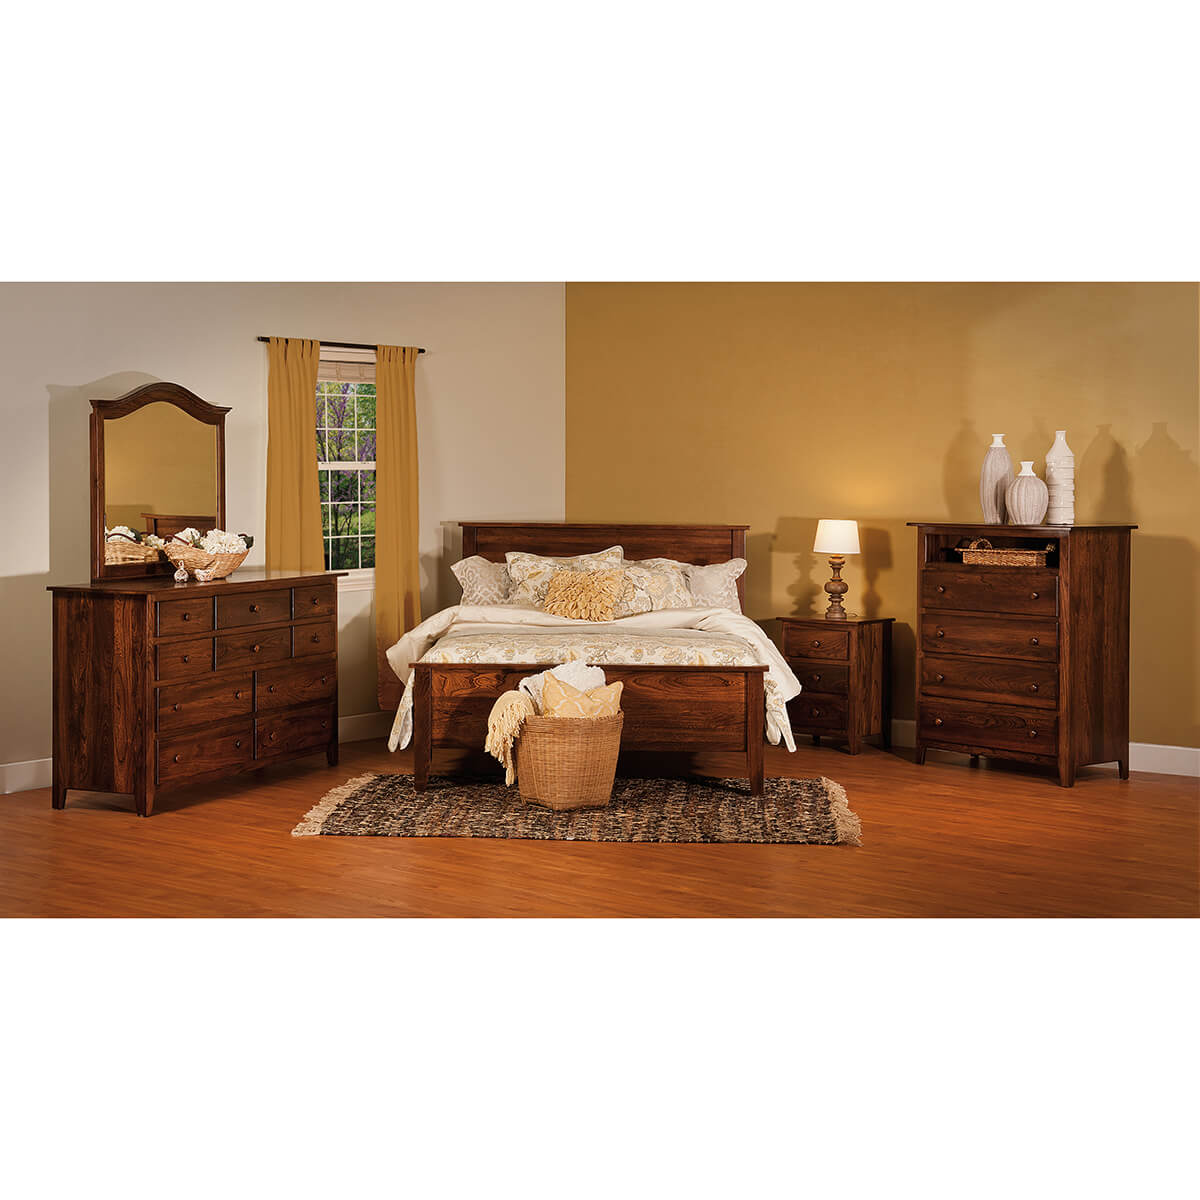 Shaker Bedroom Collection